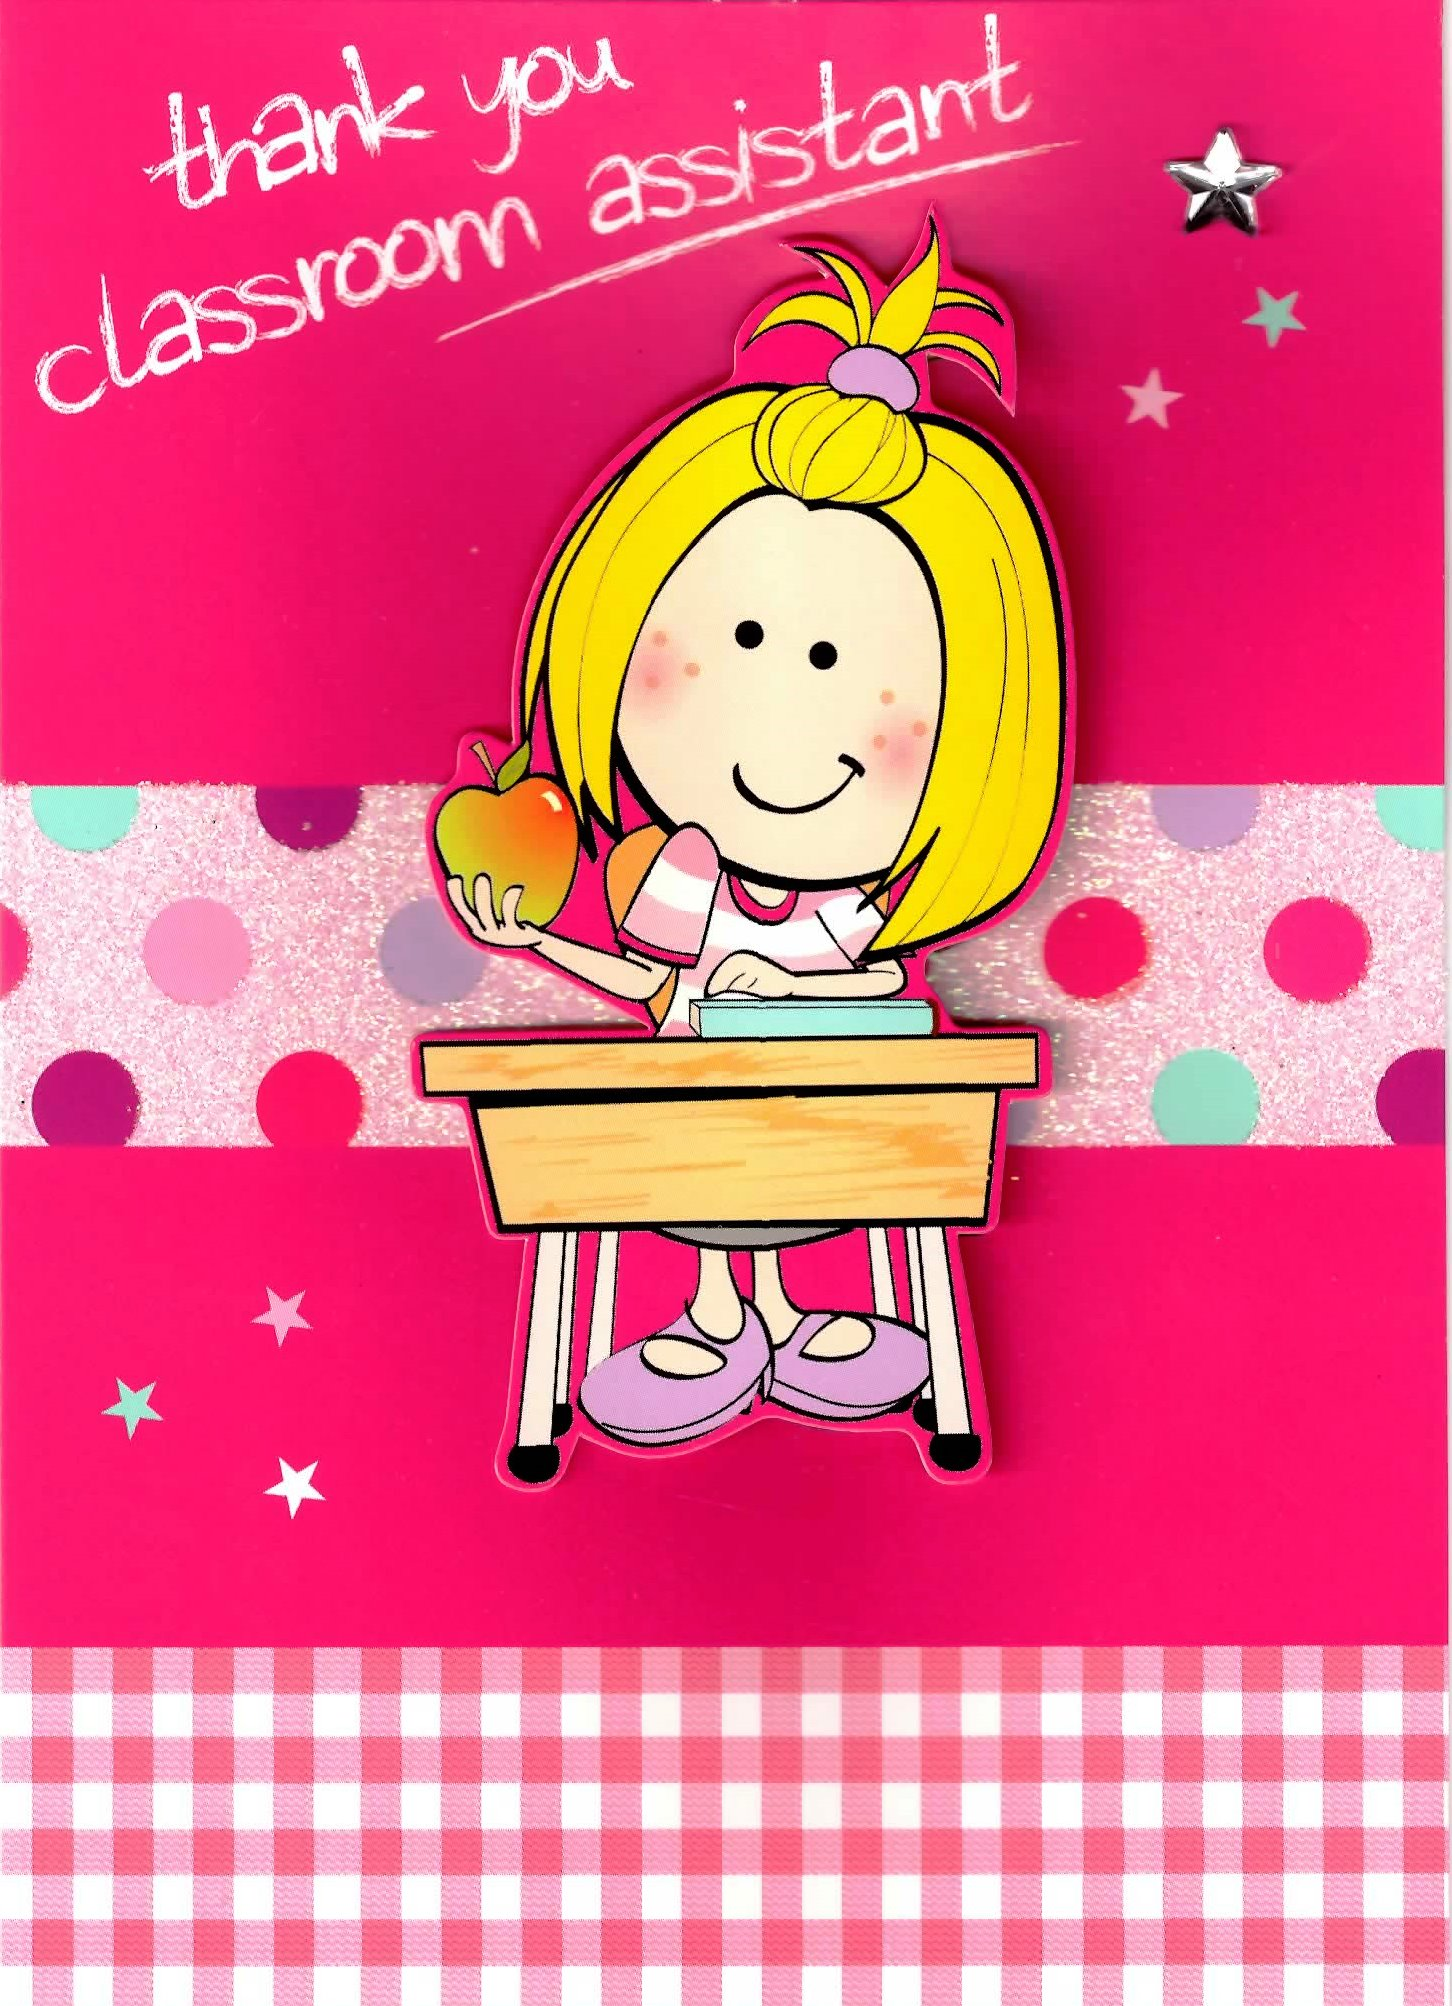 Girl thank you classroom assistant greeting card cards love kates girl thank you classroom assistant greeting card m4hsunfo